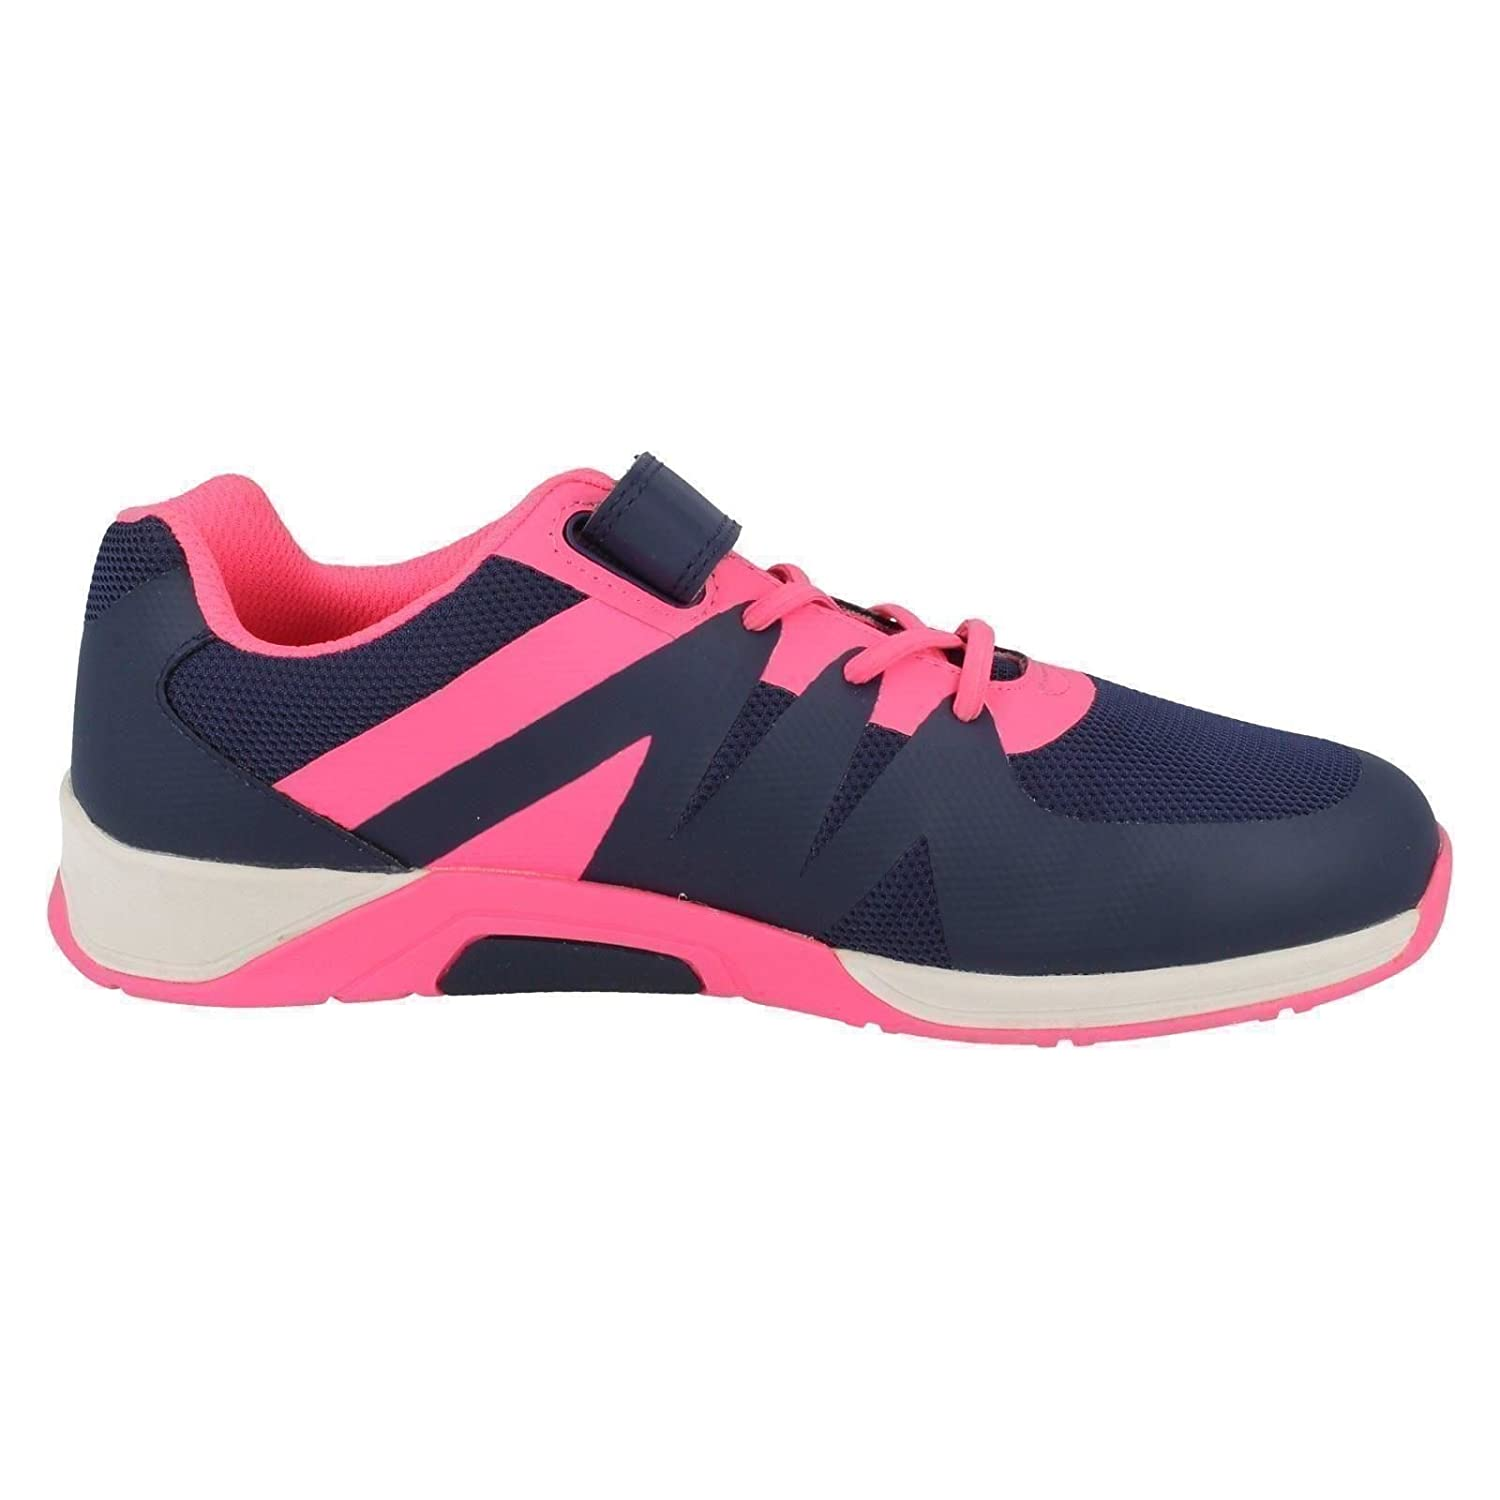 Clarks Trace Star Junior Synthetic Trainers In Blue Standard Fit Size 6:  Amazon.co.uk: Shoes & Bags